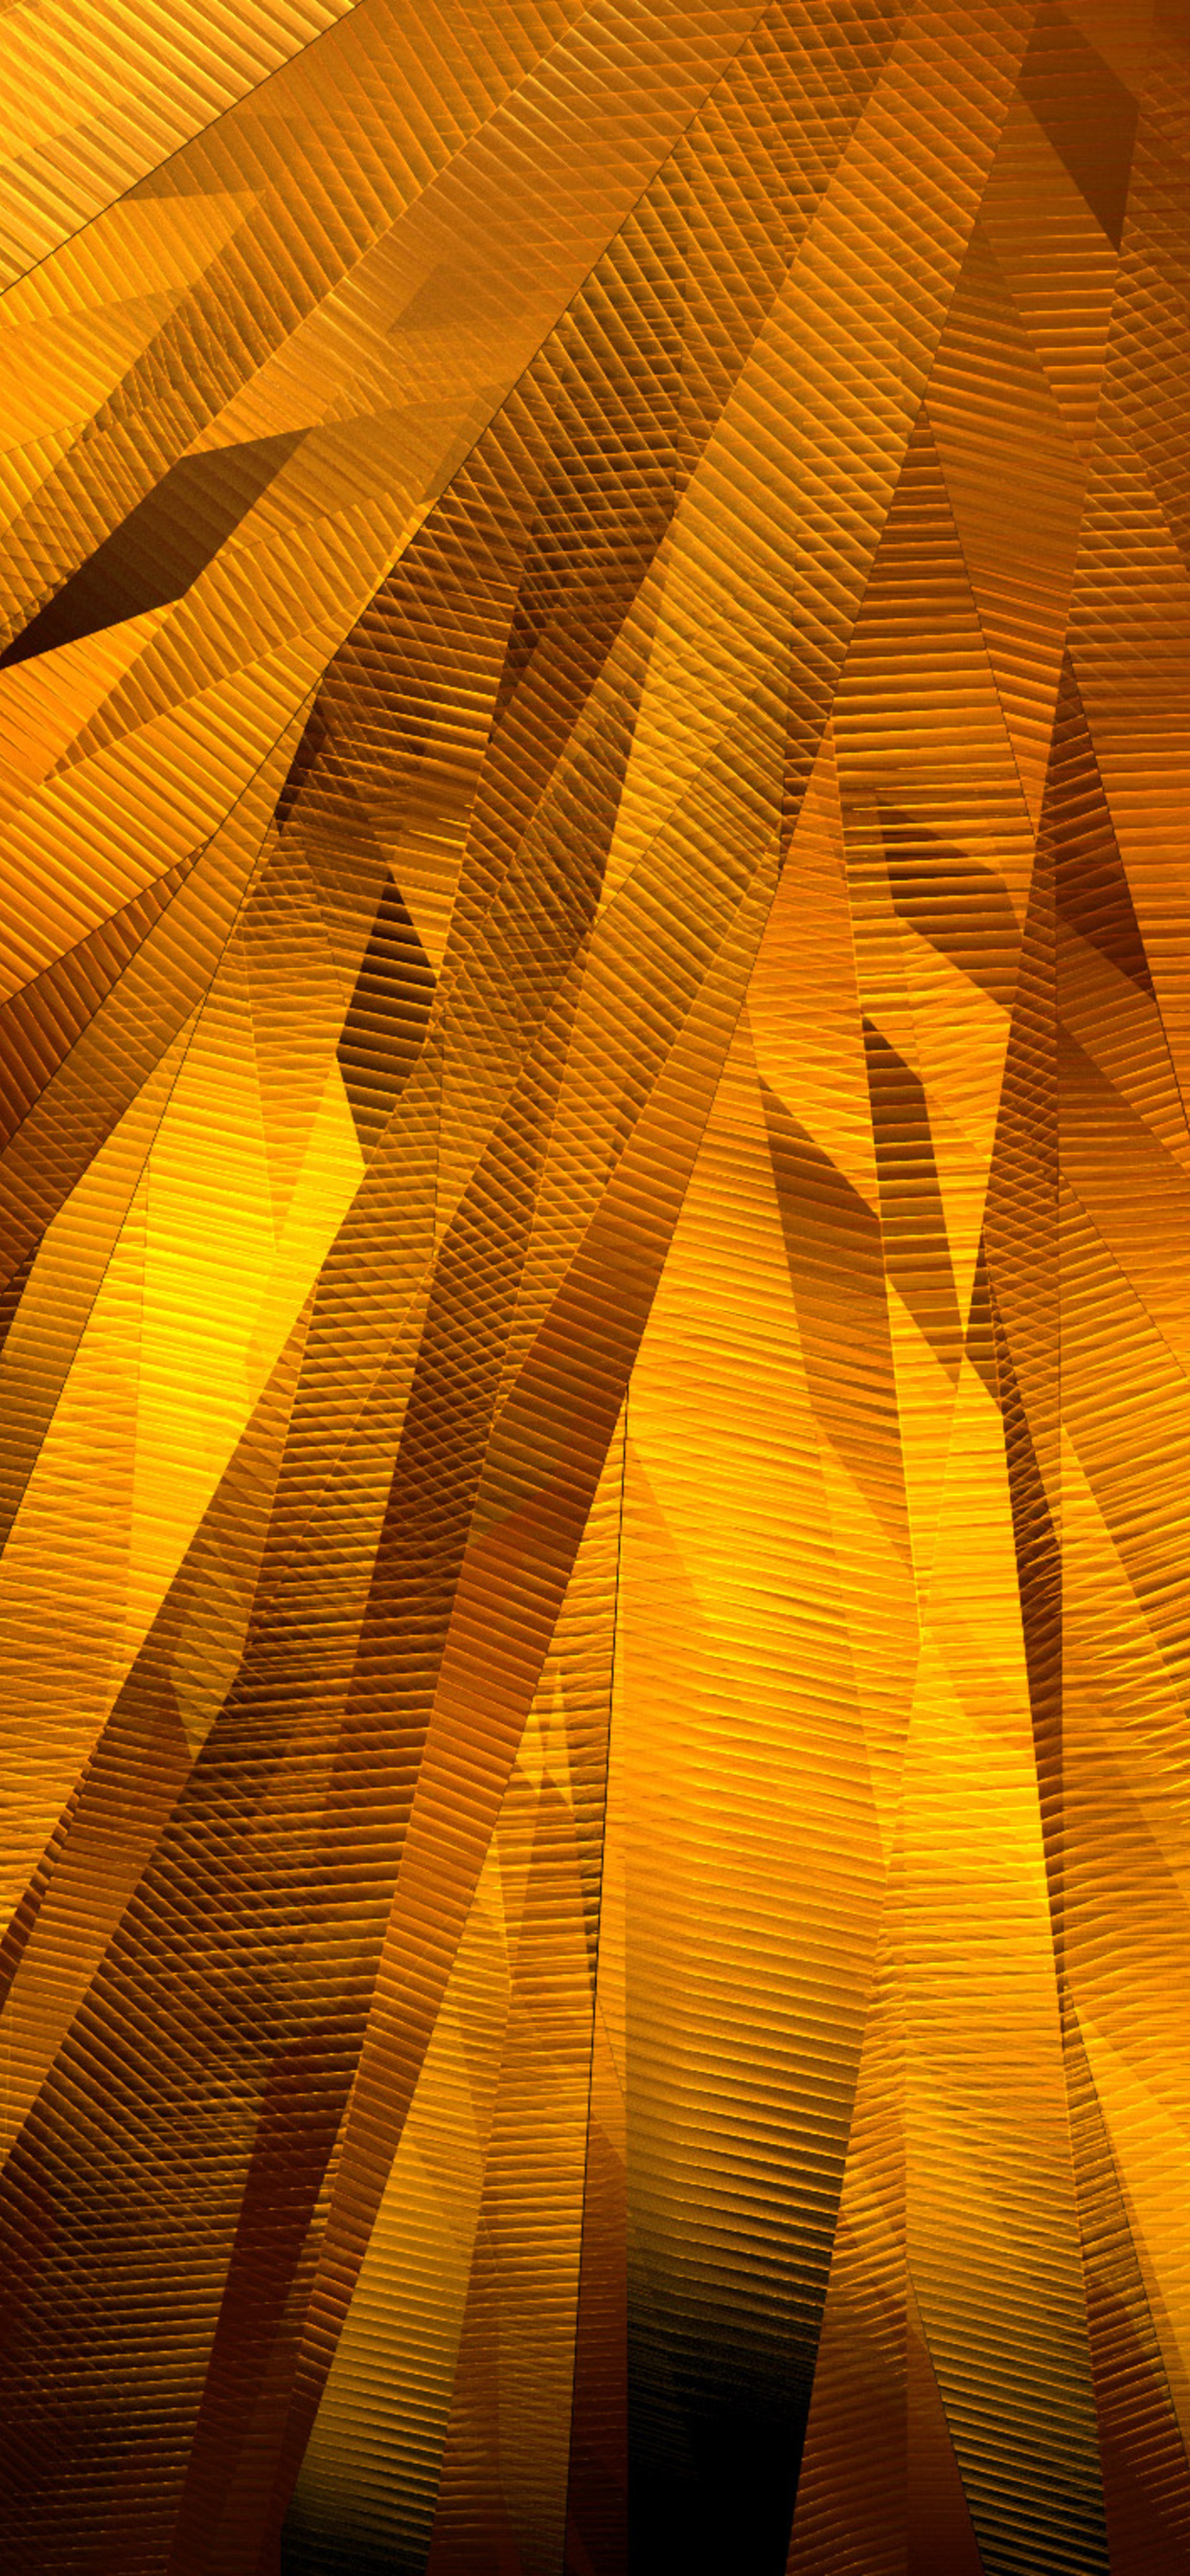 1242x2688 Abstract Golden Belts Iphone Xs Max Hd 4k